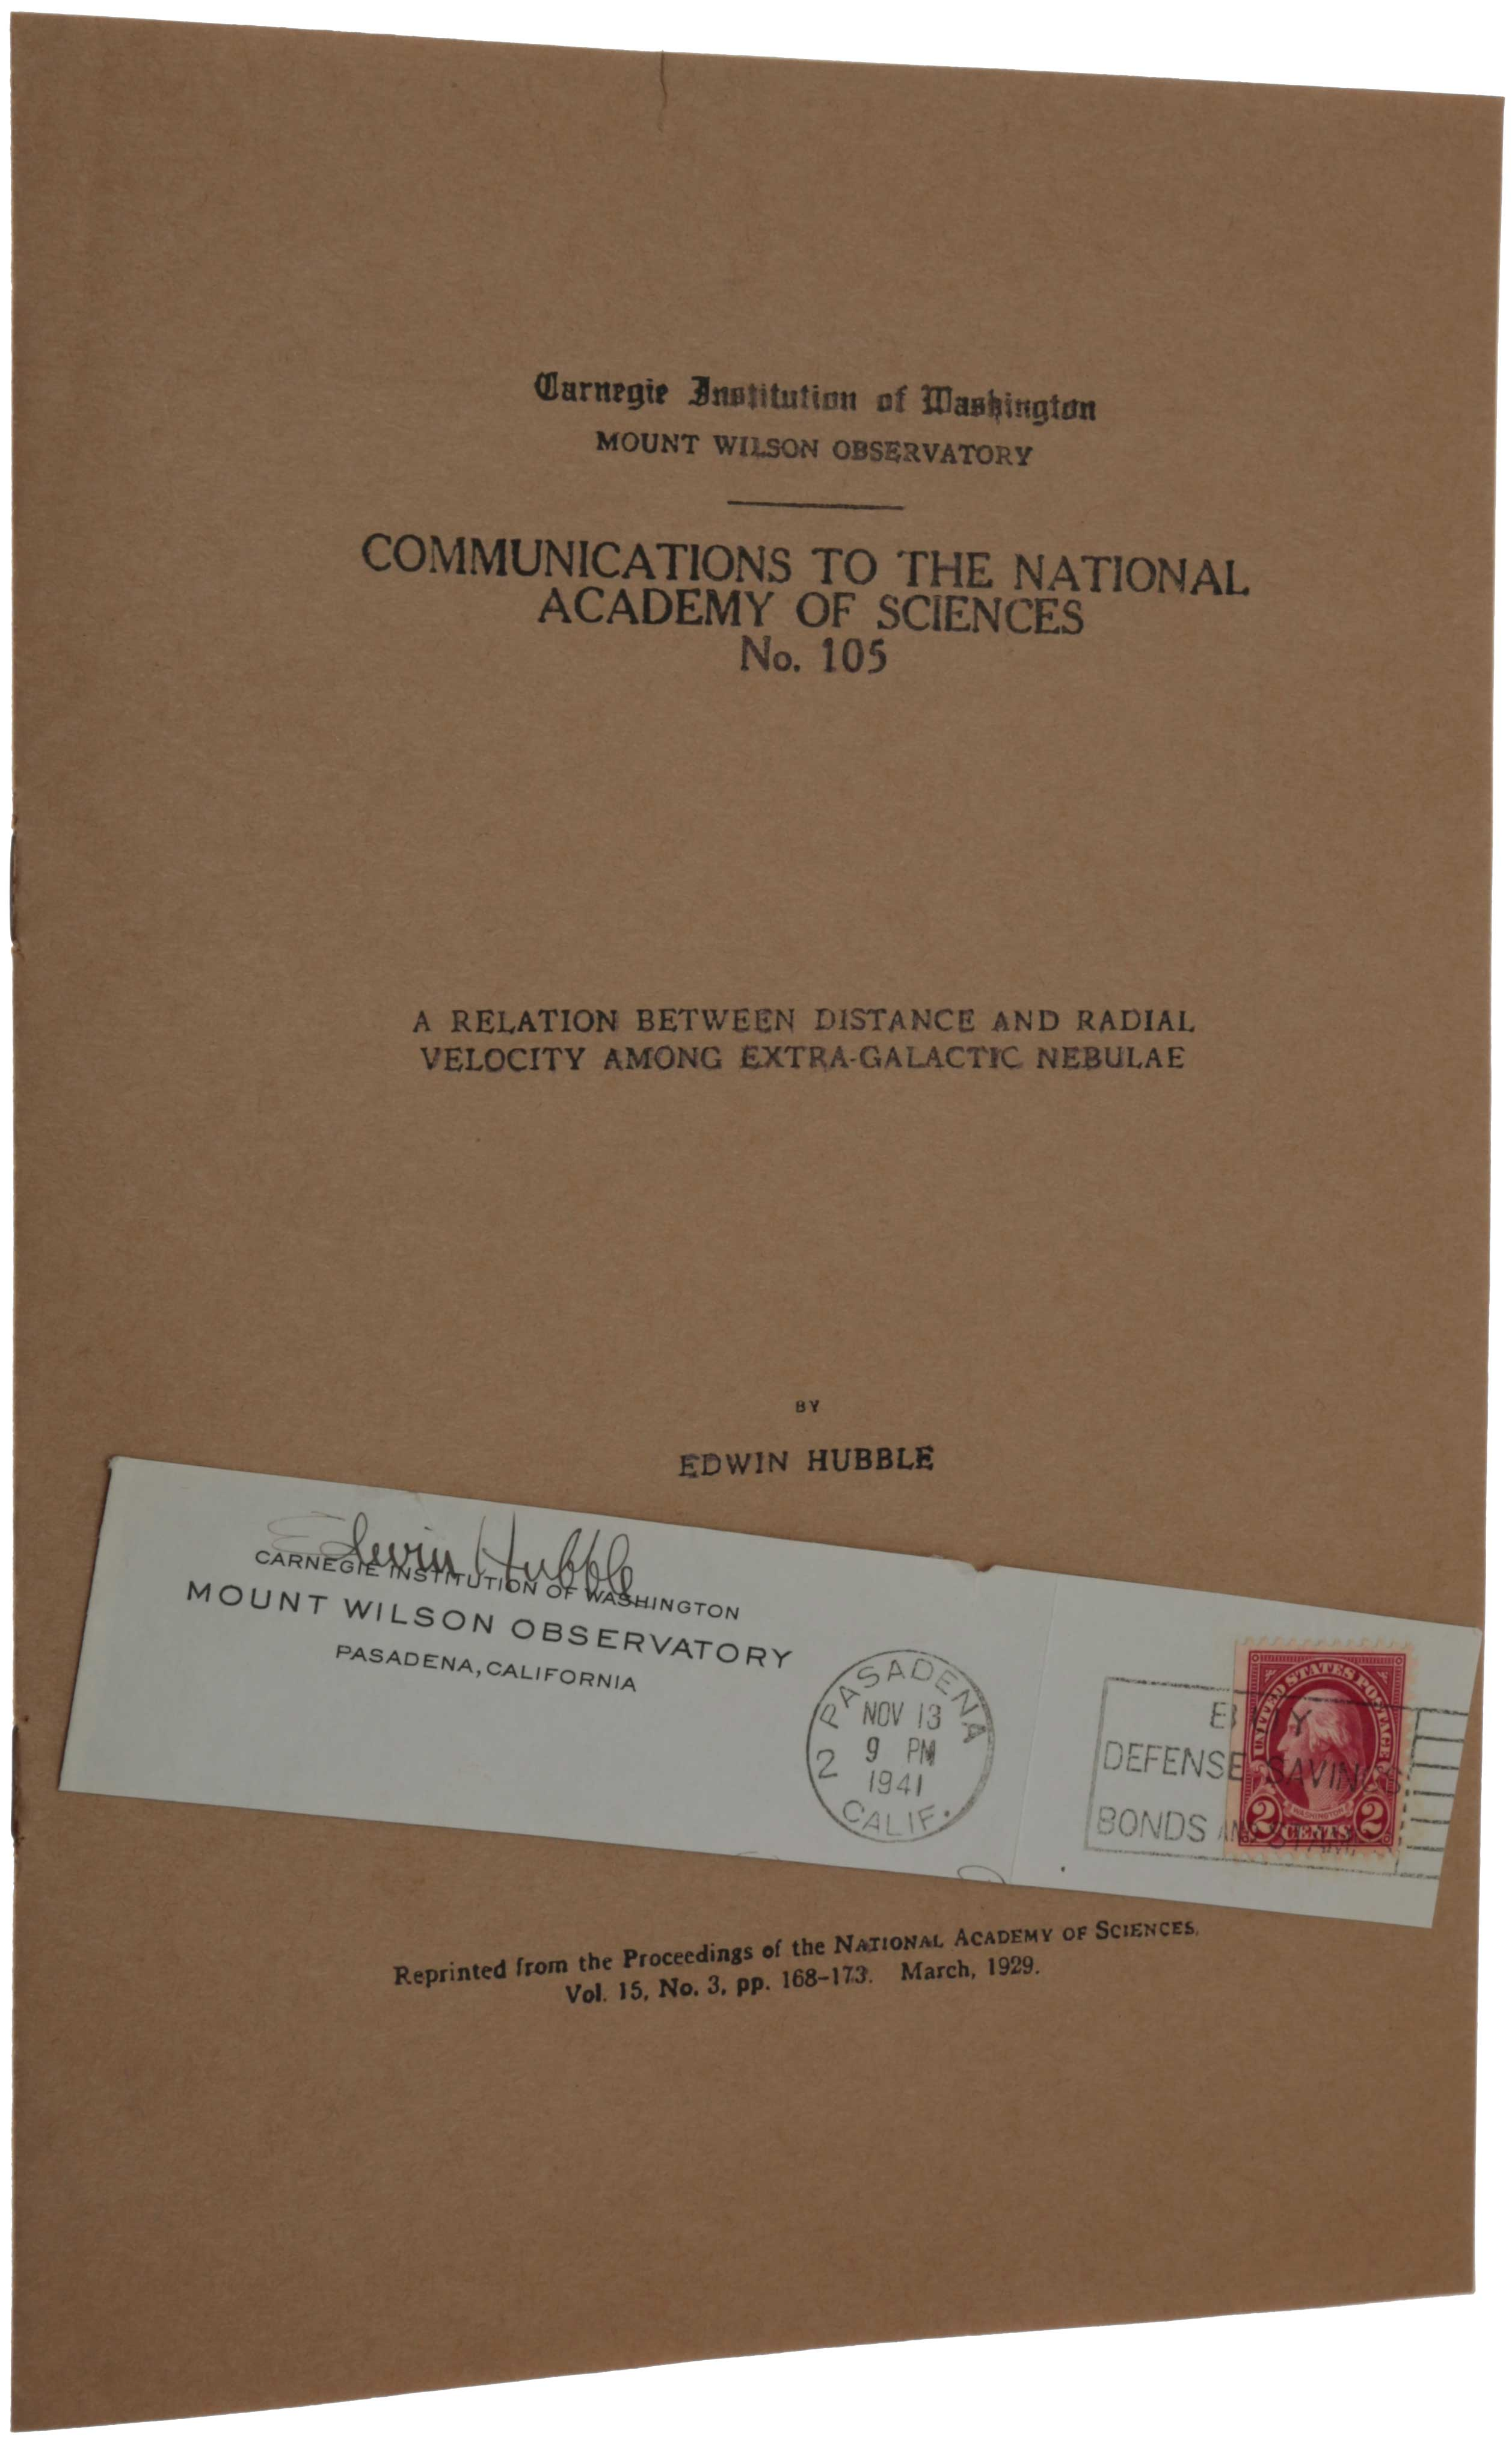 'A Relation between Distance and Radial Velocity among Extra-Galactic Nebulae.' Offprint from Proceedings of the National Academy of Sciences, Vol. 15, No. 3. N. p. [Washington, D.C.]: Carnegie Institution, 1929. [Offered with:] Signature of Edwin Hubble on section of an envelope sent on November 13, 1941 from Mount Wilson, where the observations leading to Hubble's discovery of the expansion of the universe were carried out, retaining printed address of the Mount Wilson Observatory and stamp. Edwin HUBBLE.